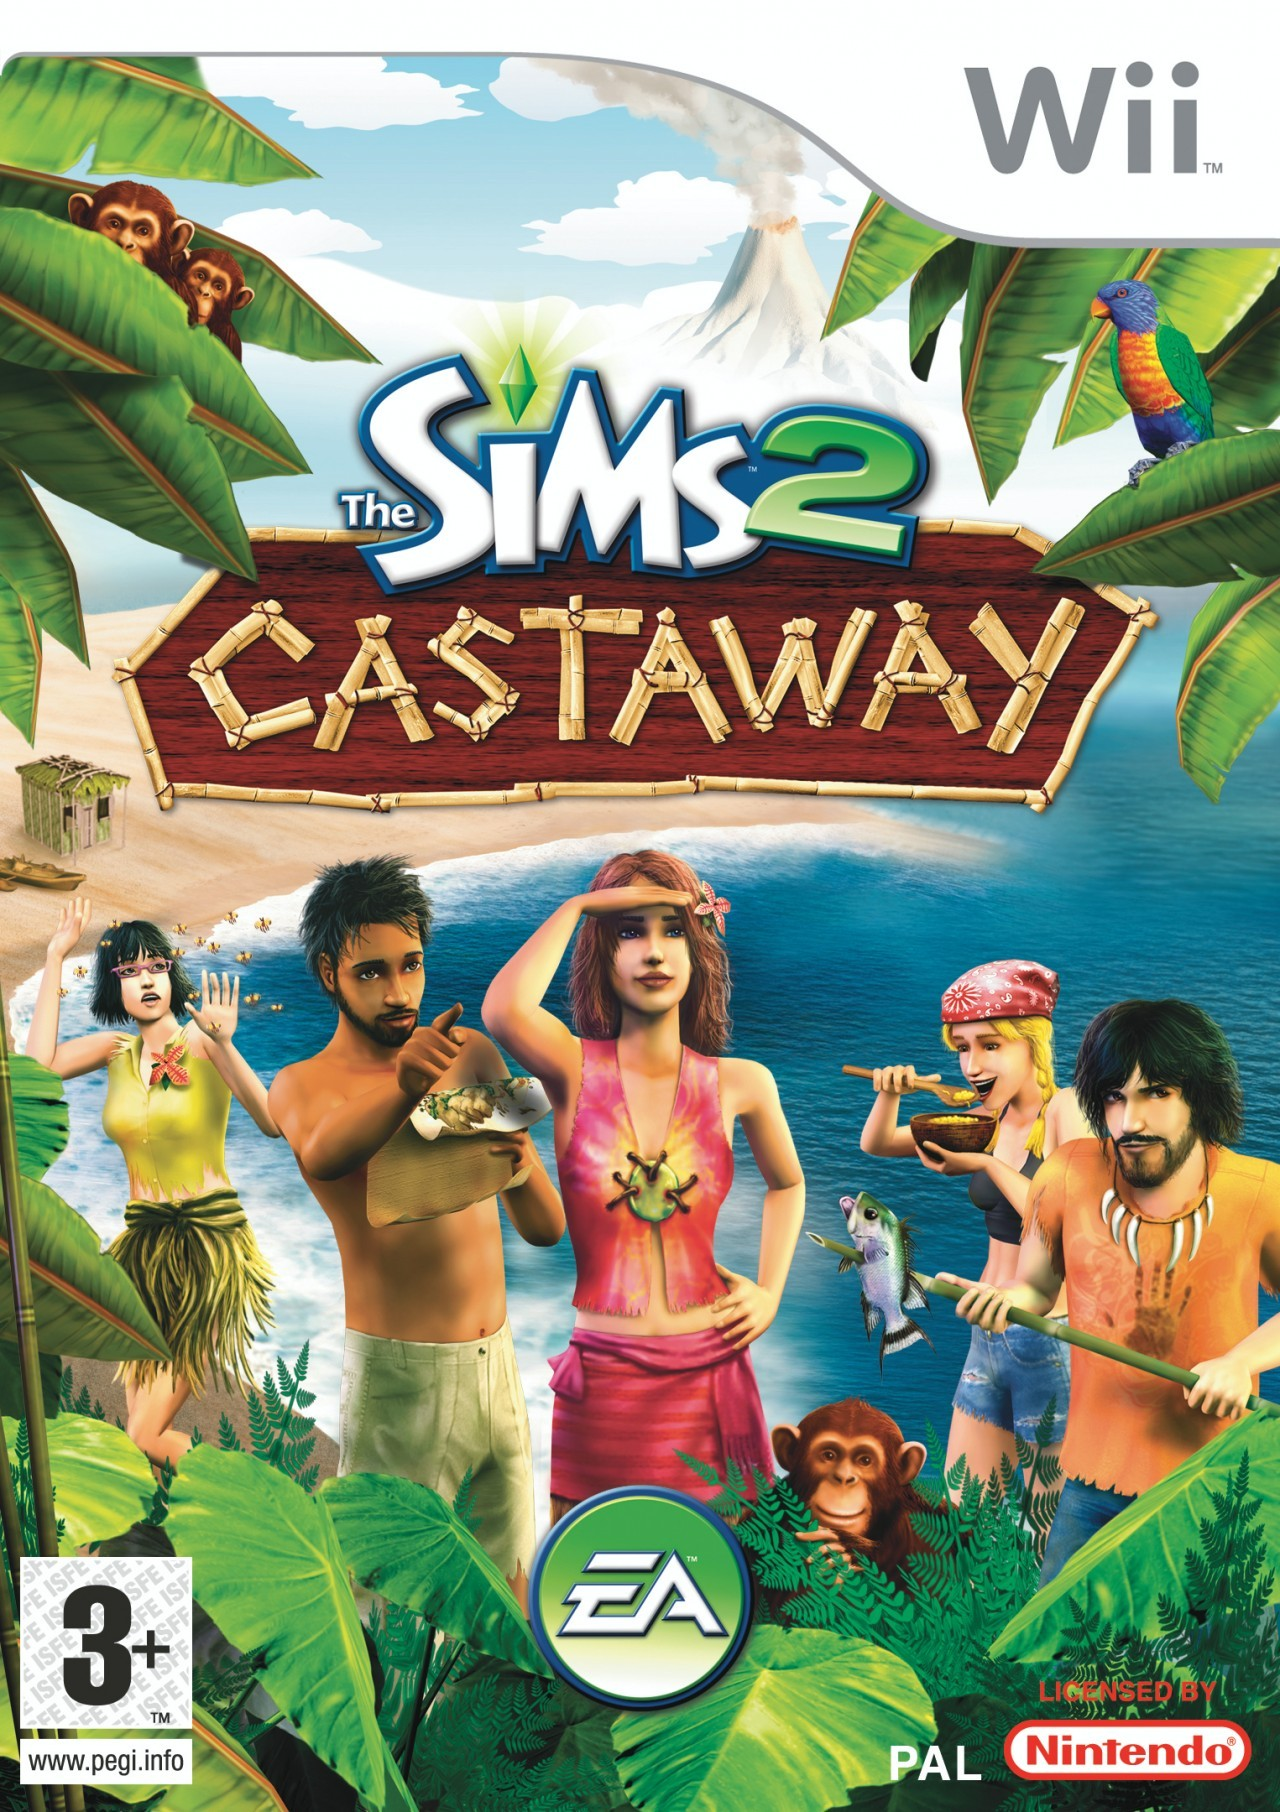 File:Thesims2castaway-wii.jpg